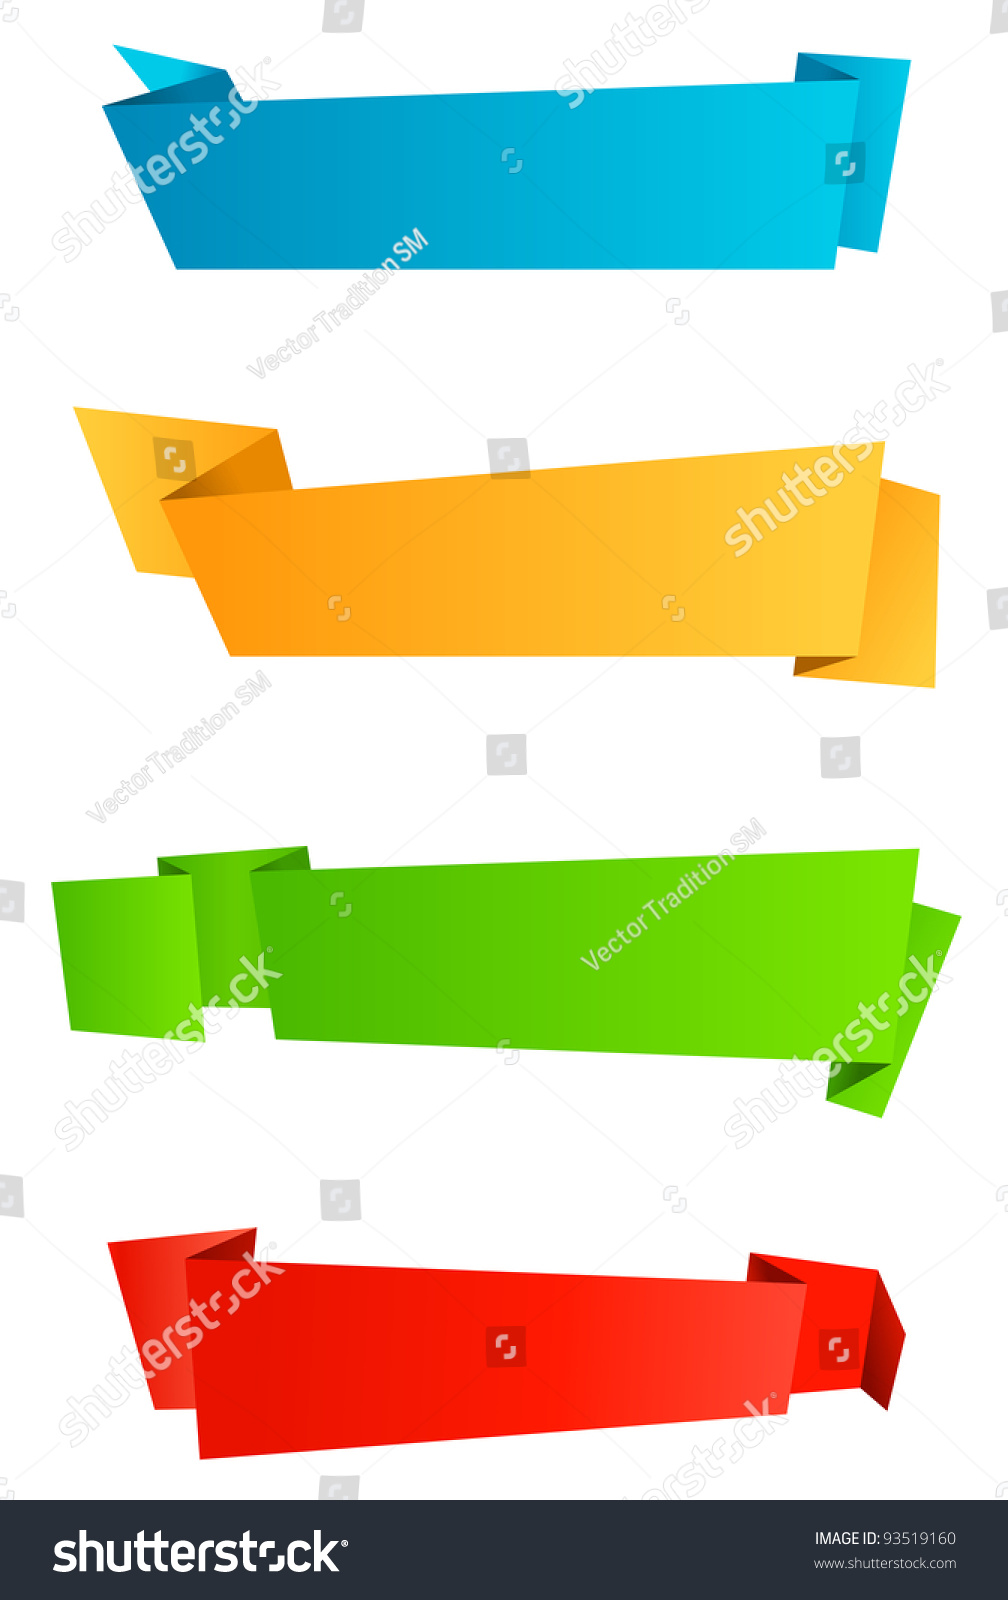 Royalty Free Stock Illustration Of Abstract Template Banners Origami